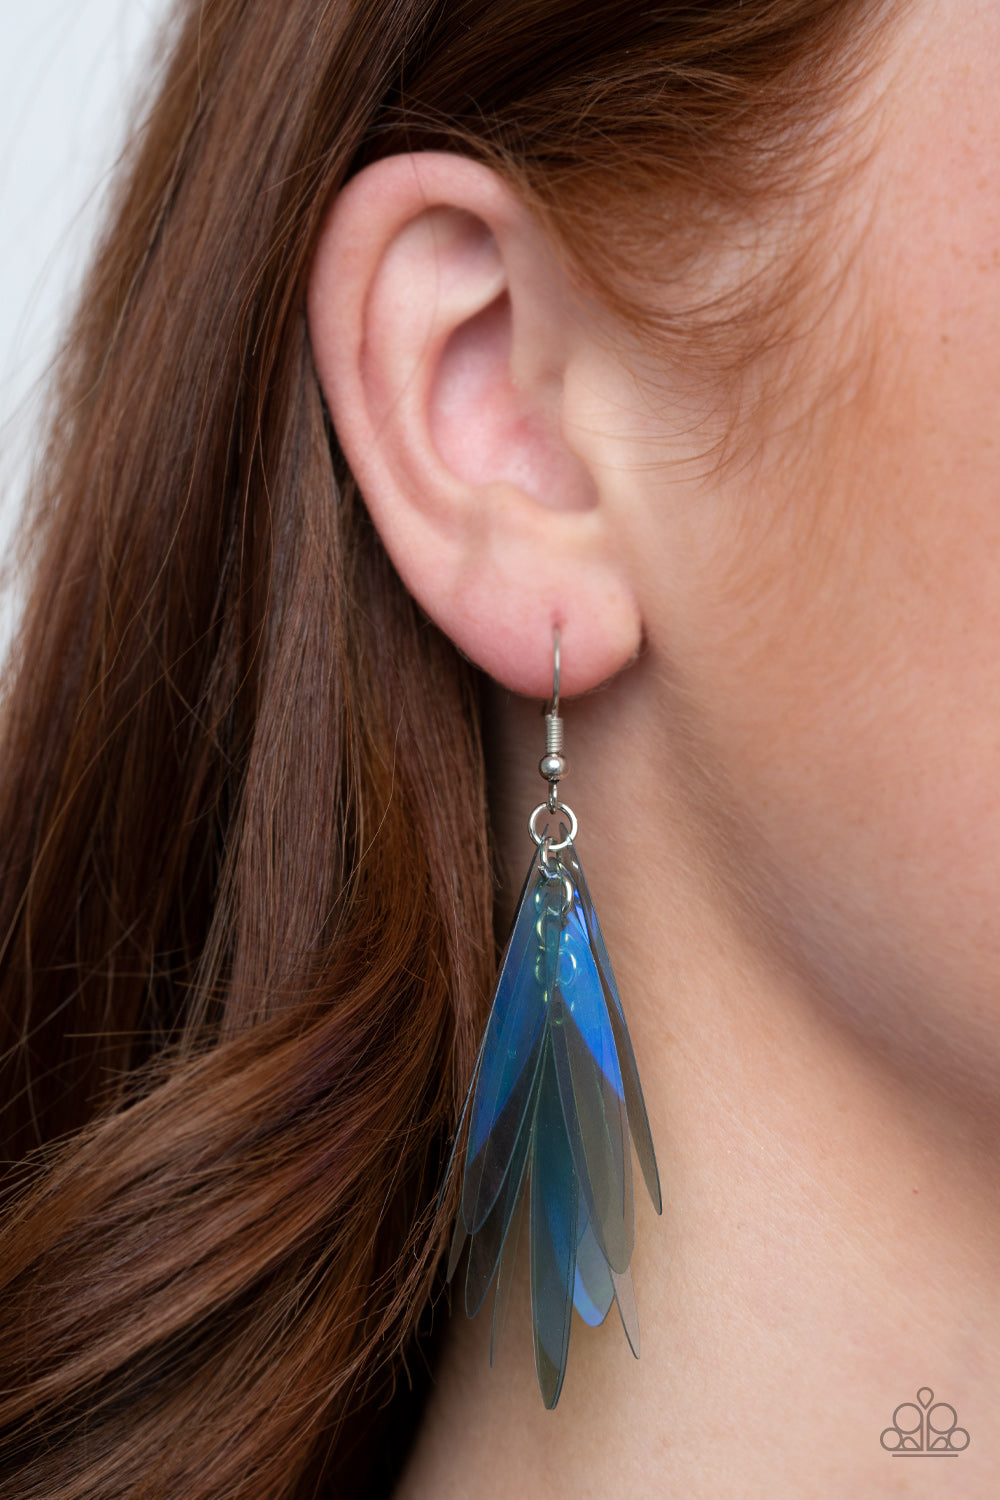 Paparazzi Jewelry Accessories - Holographic Glamour - Blue Earrings. Bling By Titia Boutique